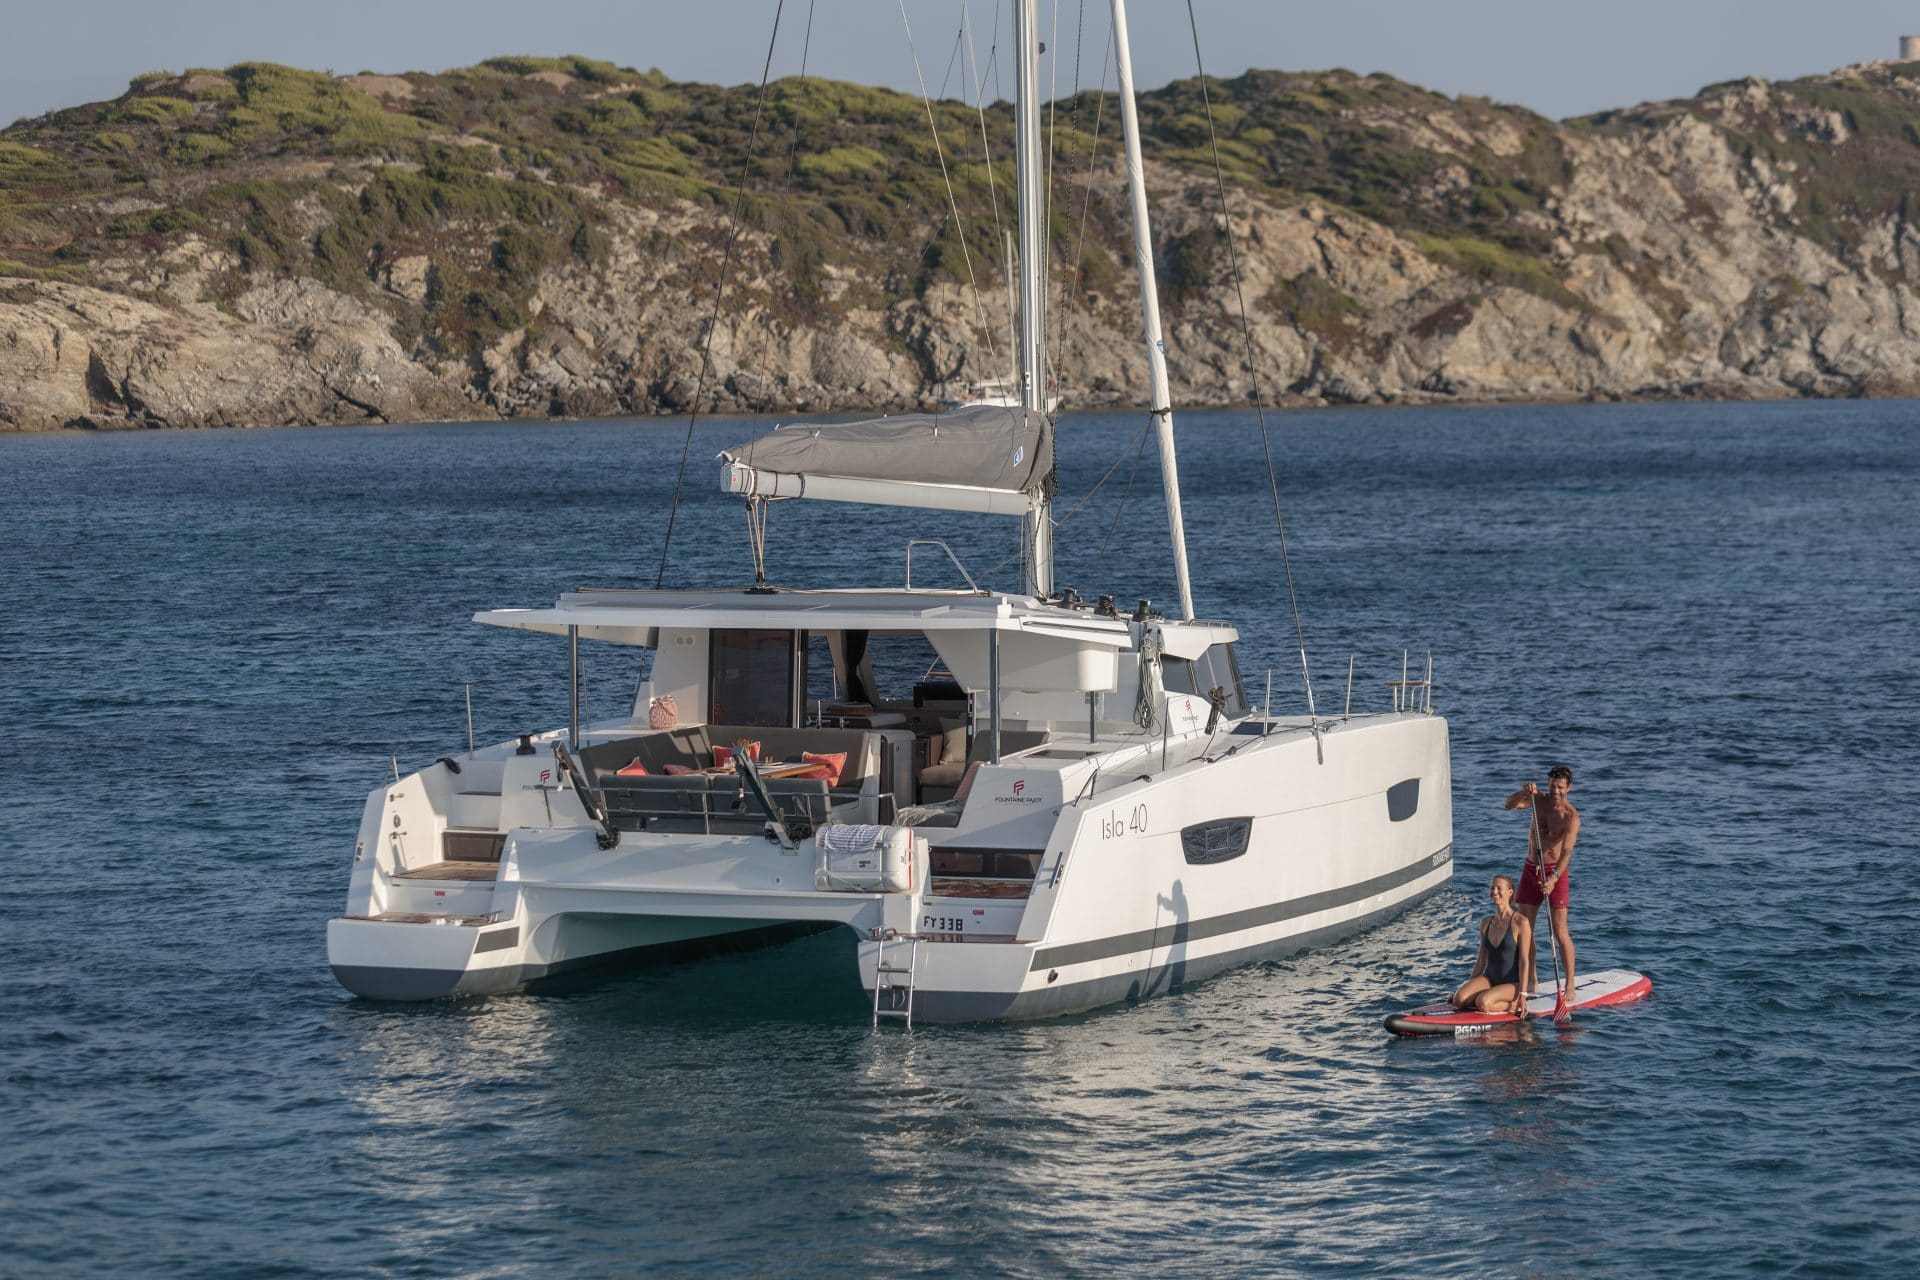 Location et vente Isla 40 catamaran Fountaine pajot